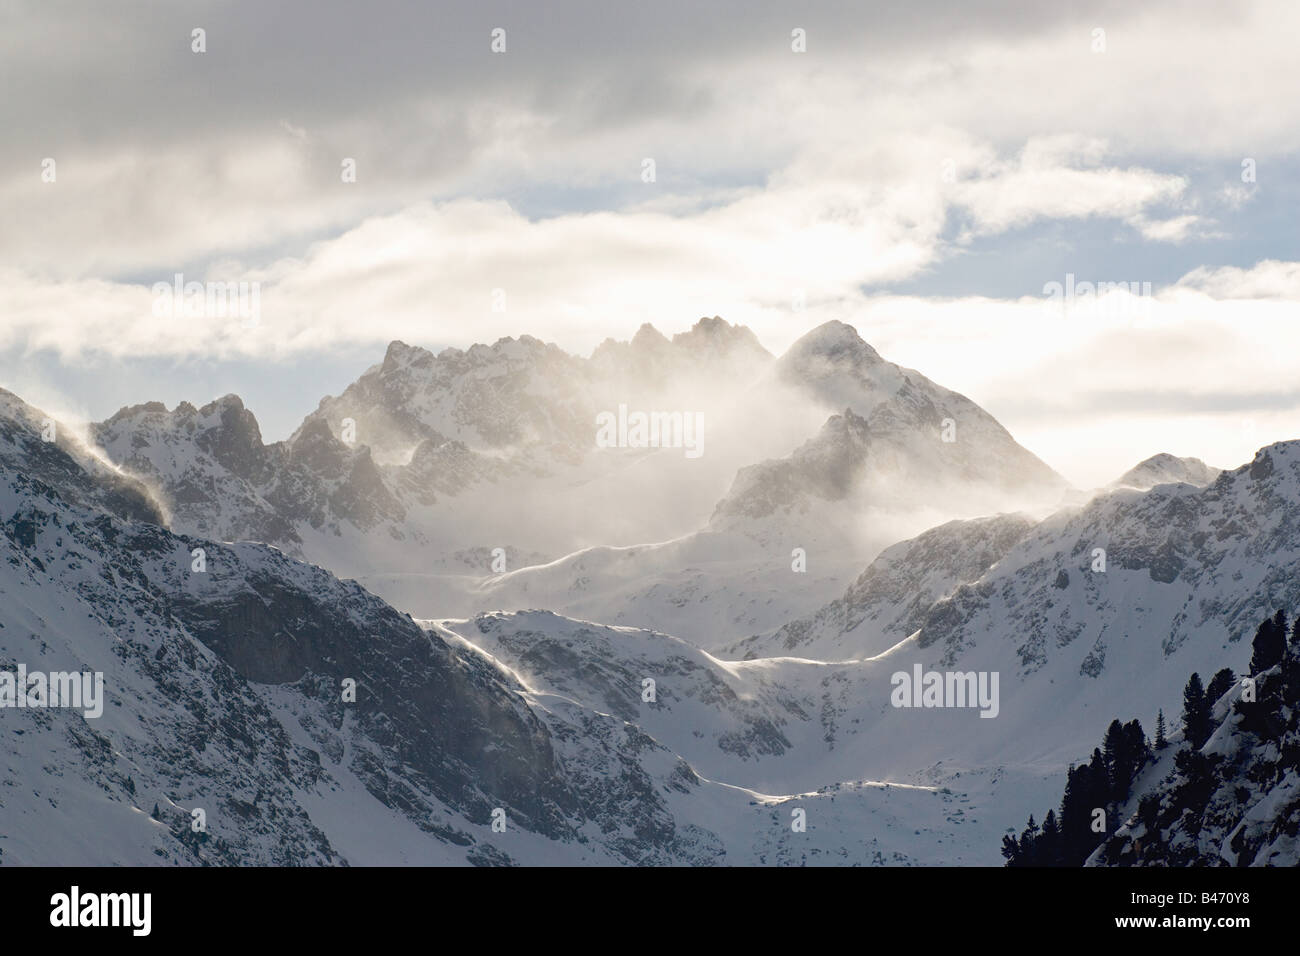 Clouds and mountain peaks - Stock Image